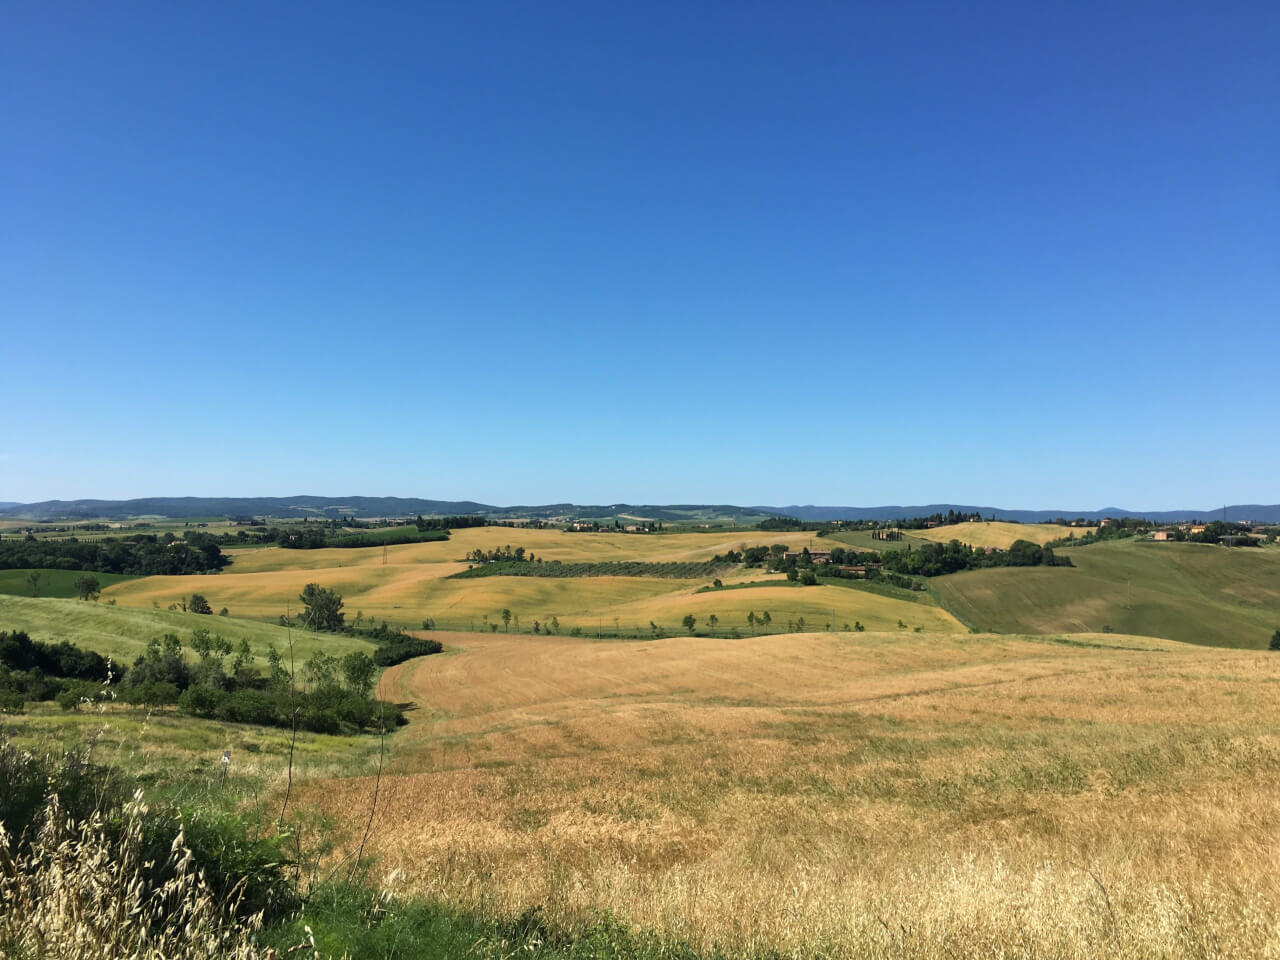 Getting lost in Tuscan fields, Italian exams, and endless goodbyes